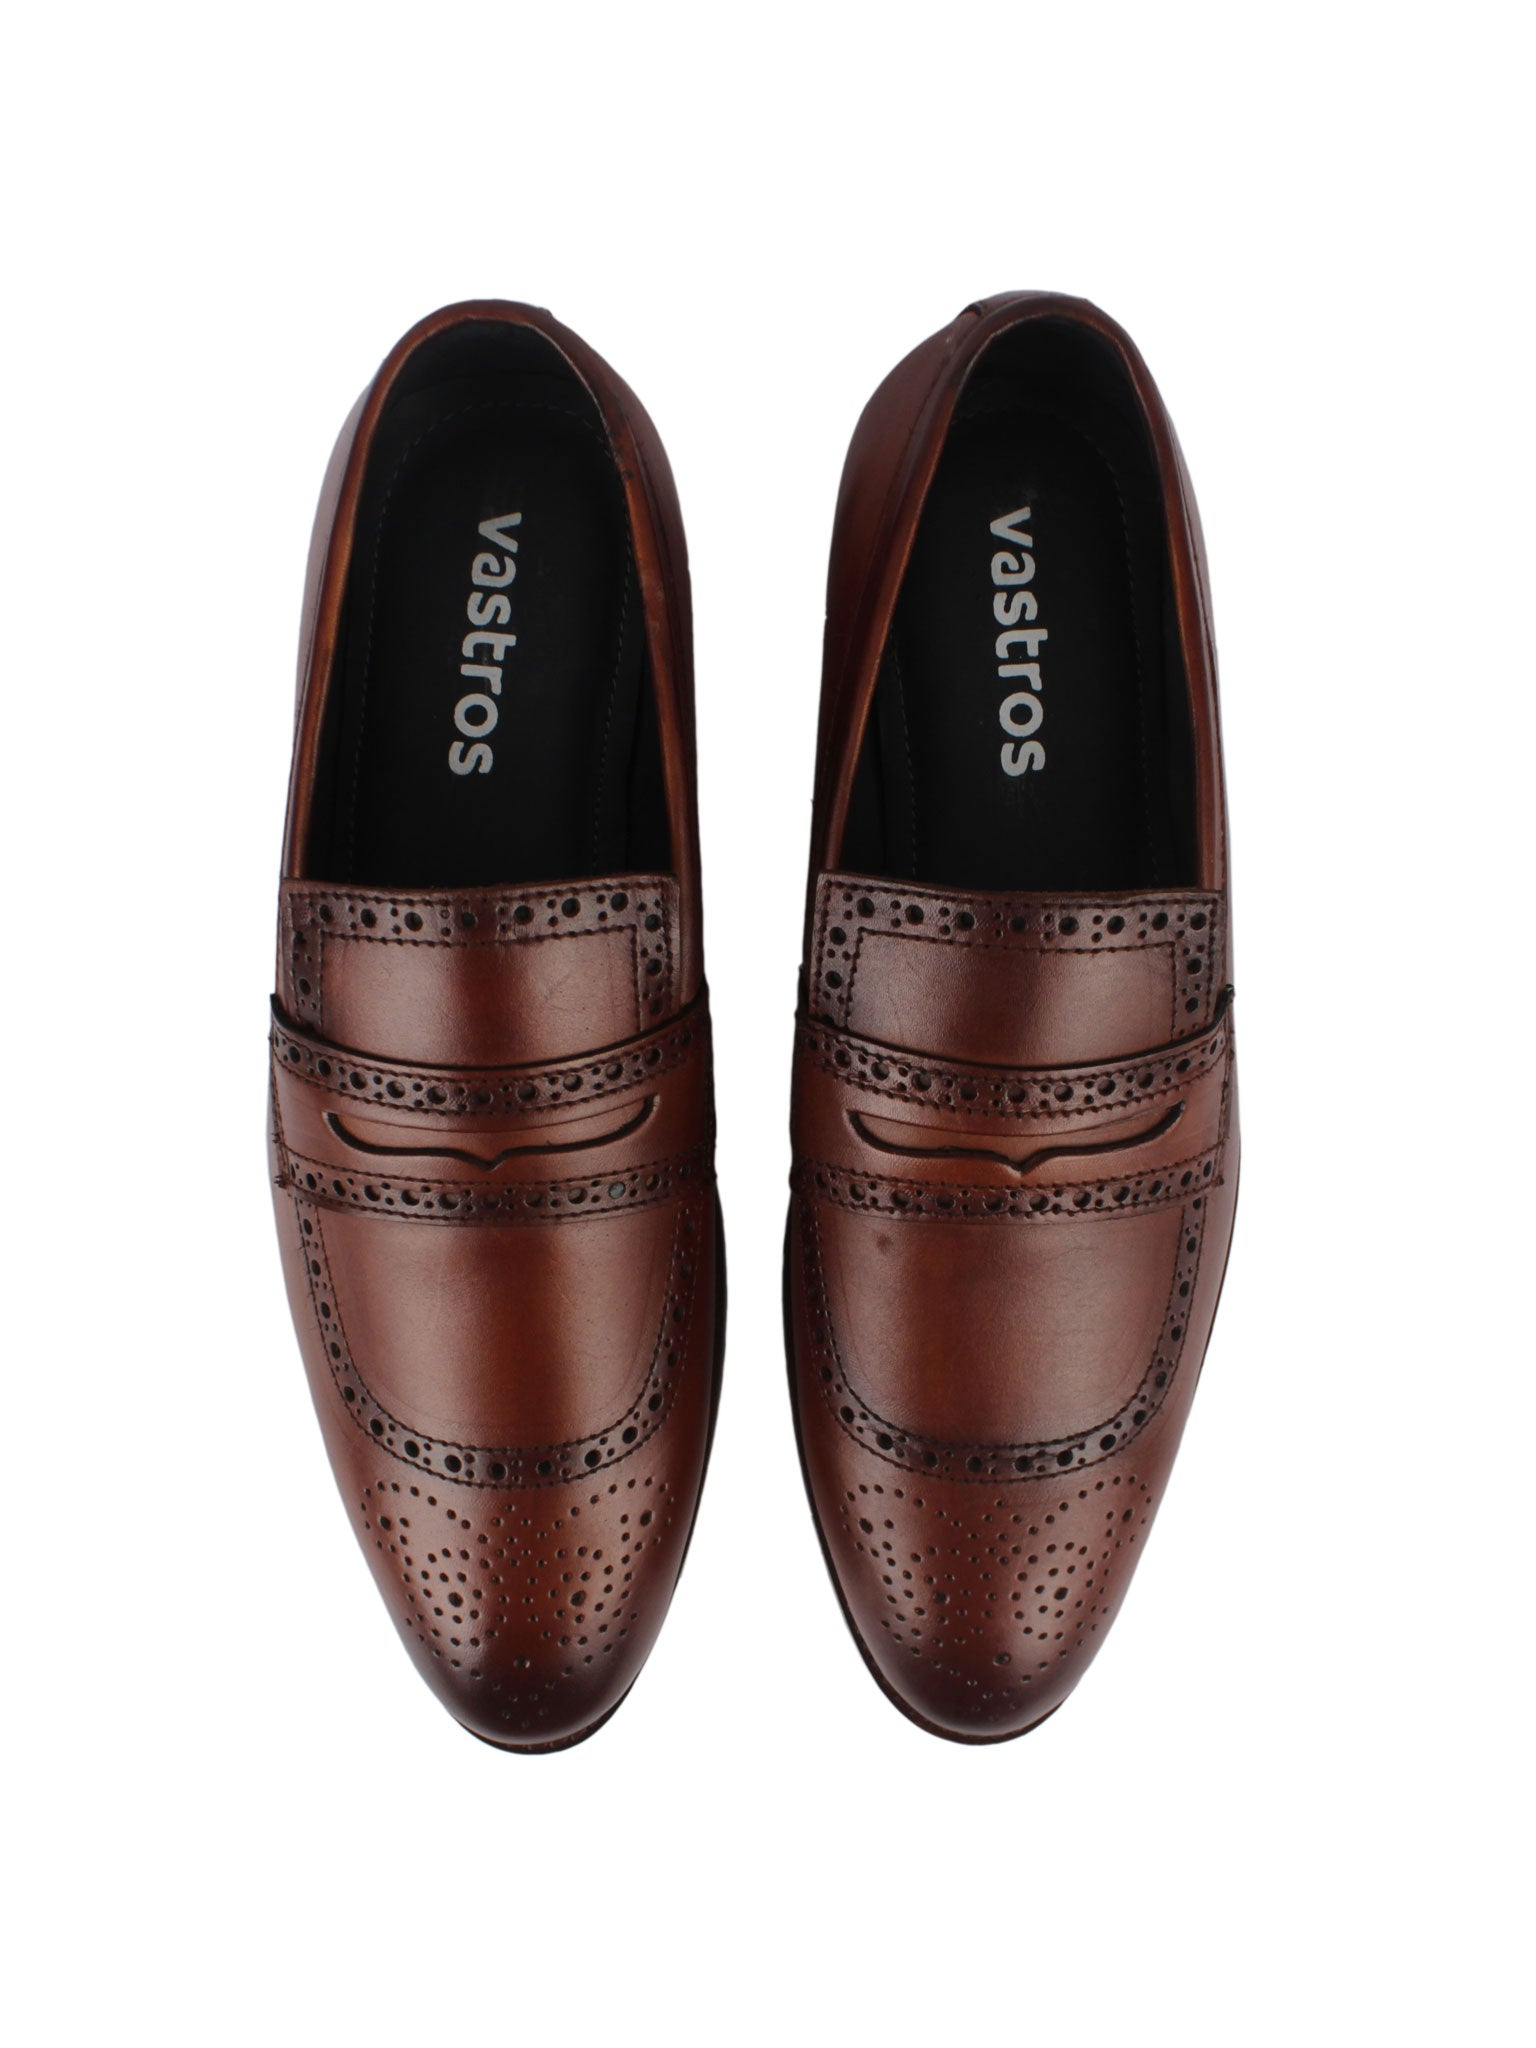 Brogue Penny Loafers - Brown